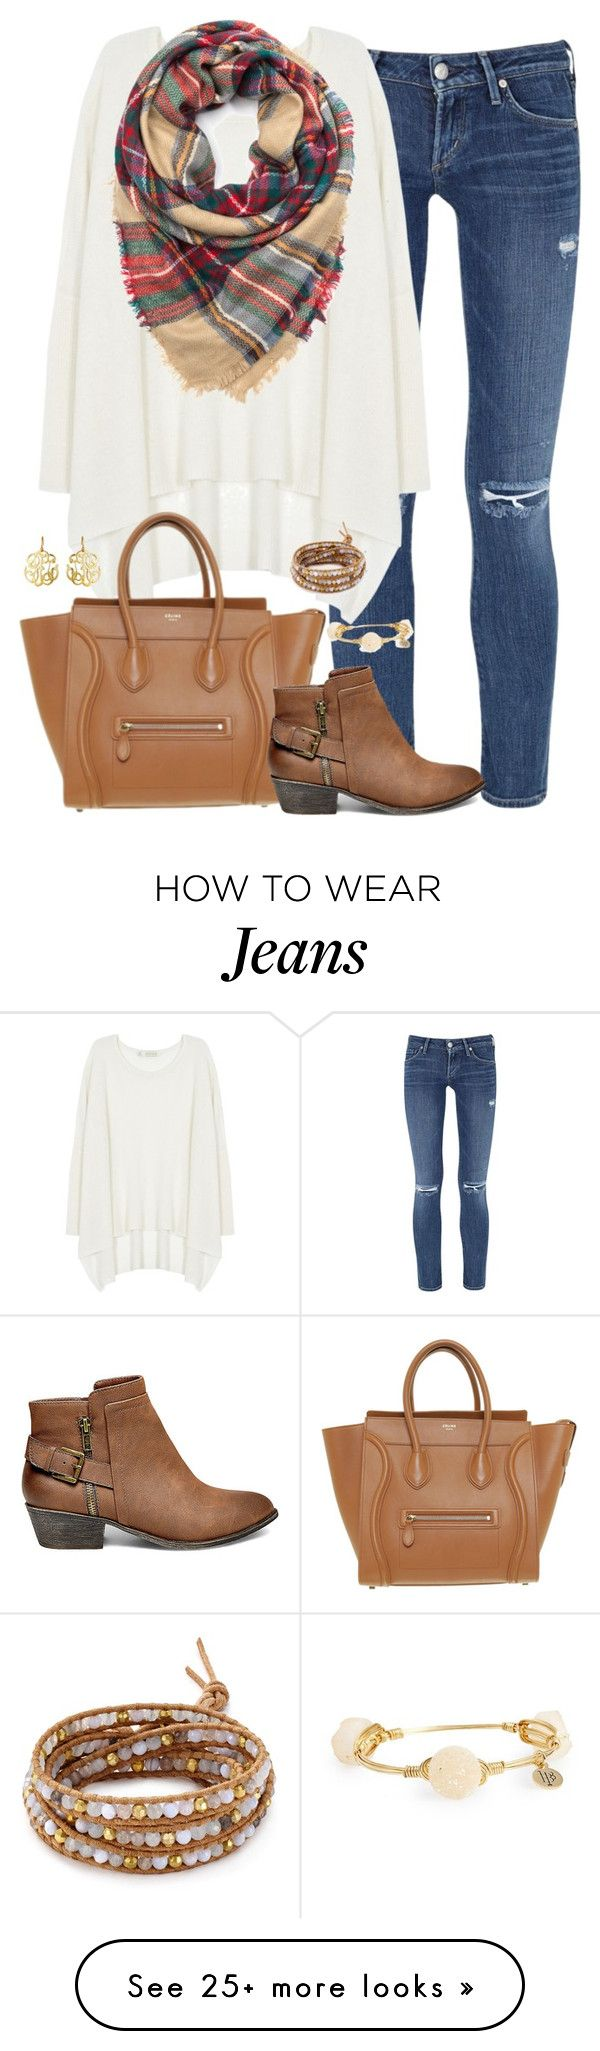 """""""♡ every day is a fresh start ♡"""" by kaley-ii on Polyvore featuring Citizens of Humanity, Century Seven, CÉLINE, Steve Madden, Bourbon and Boweties, Chan Luu and Susan Shaw"""